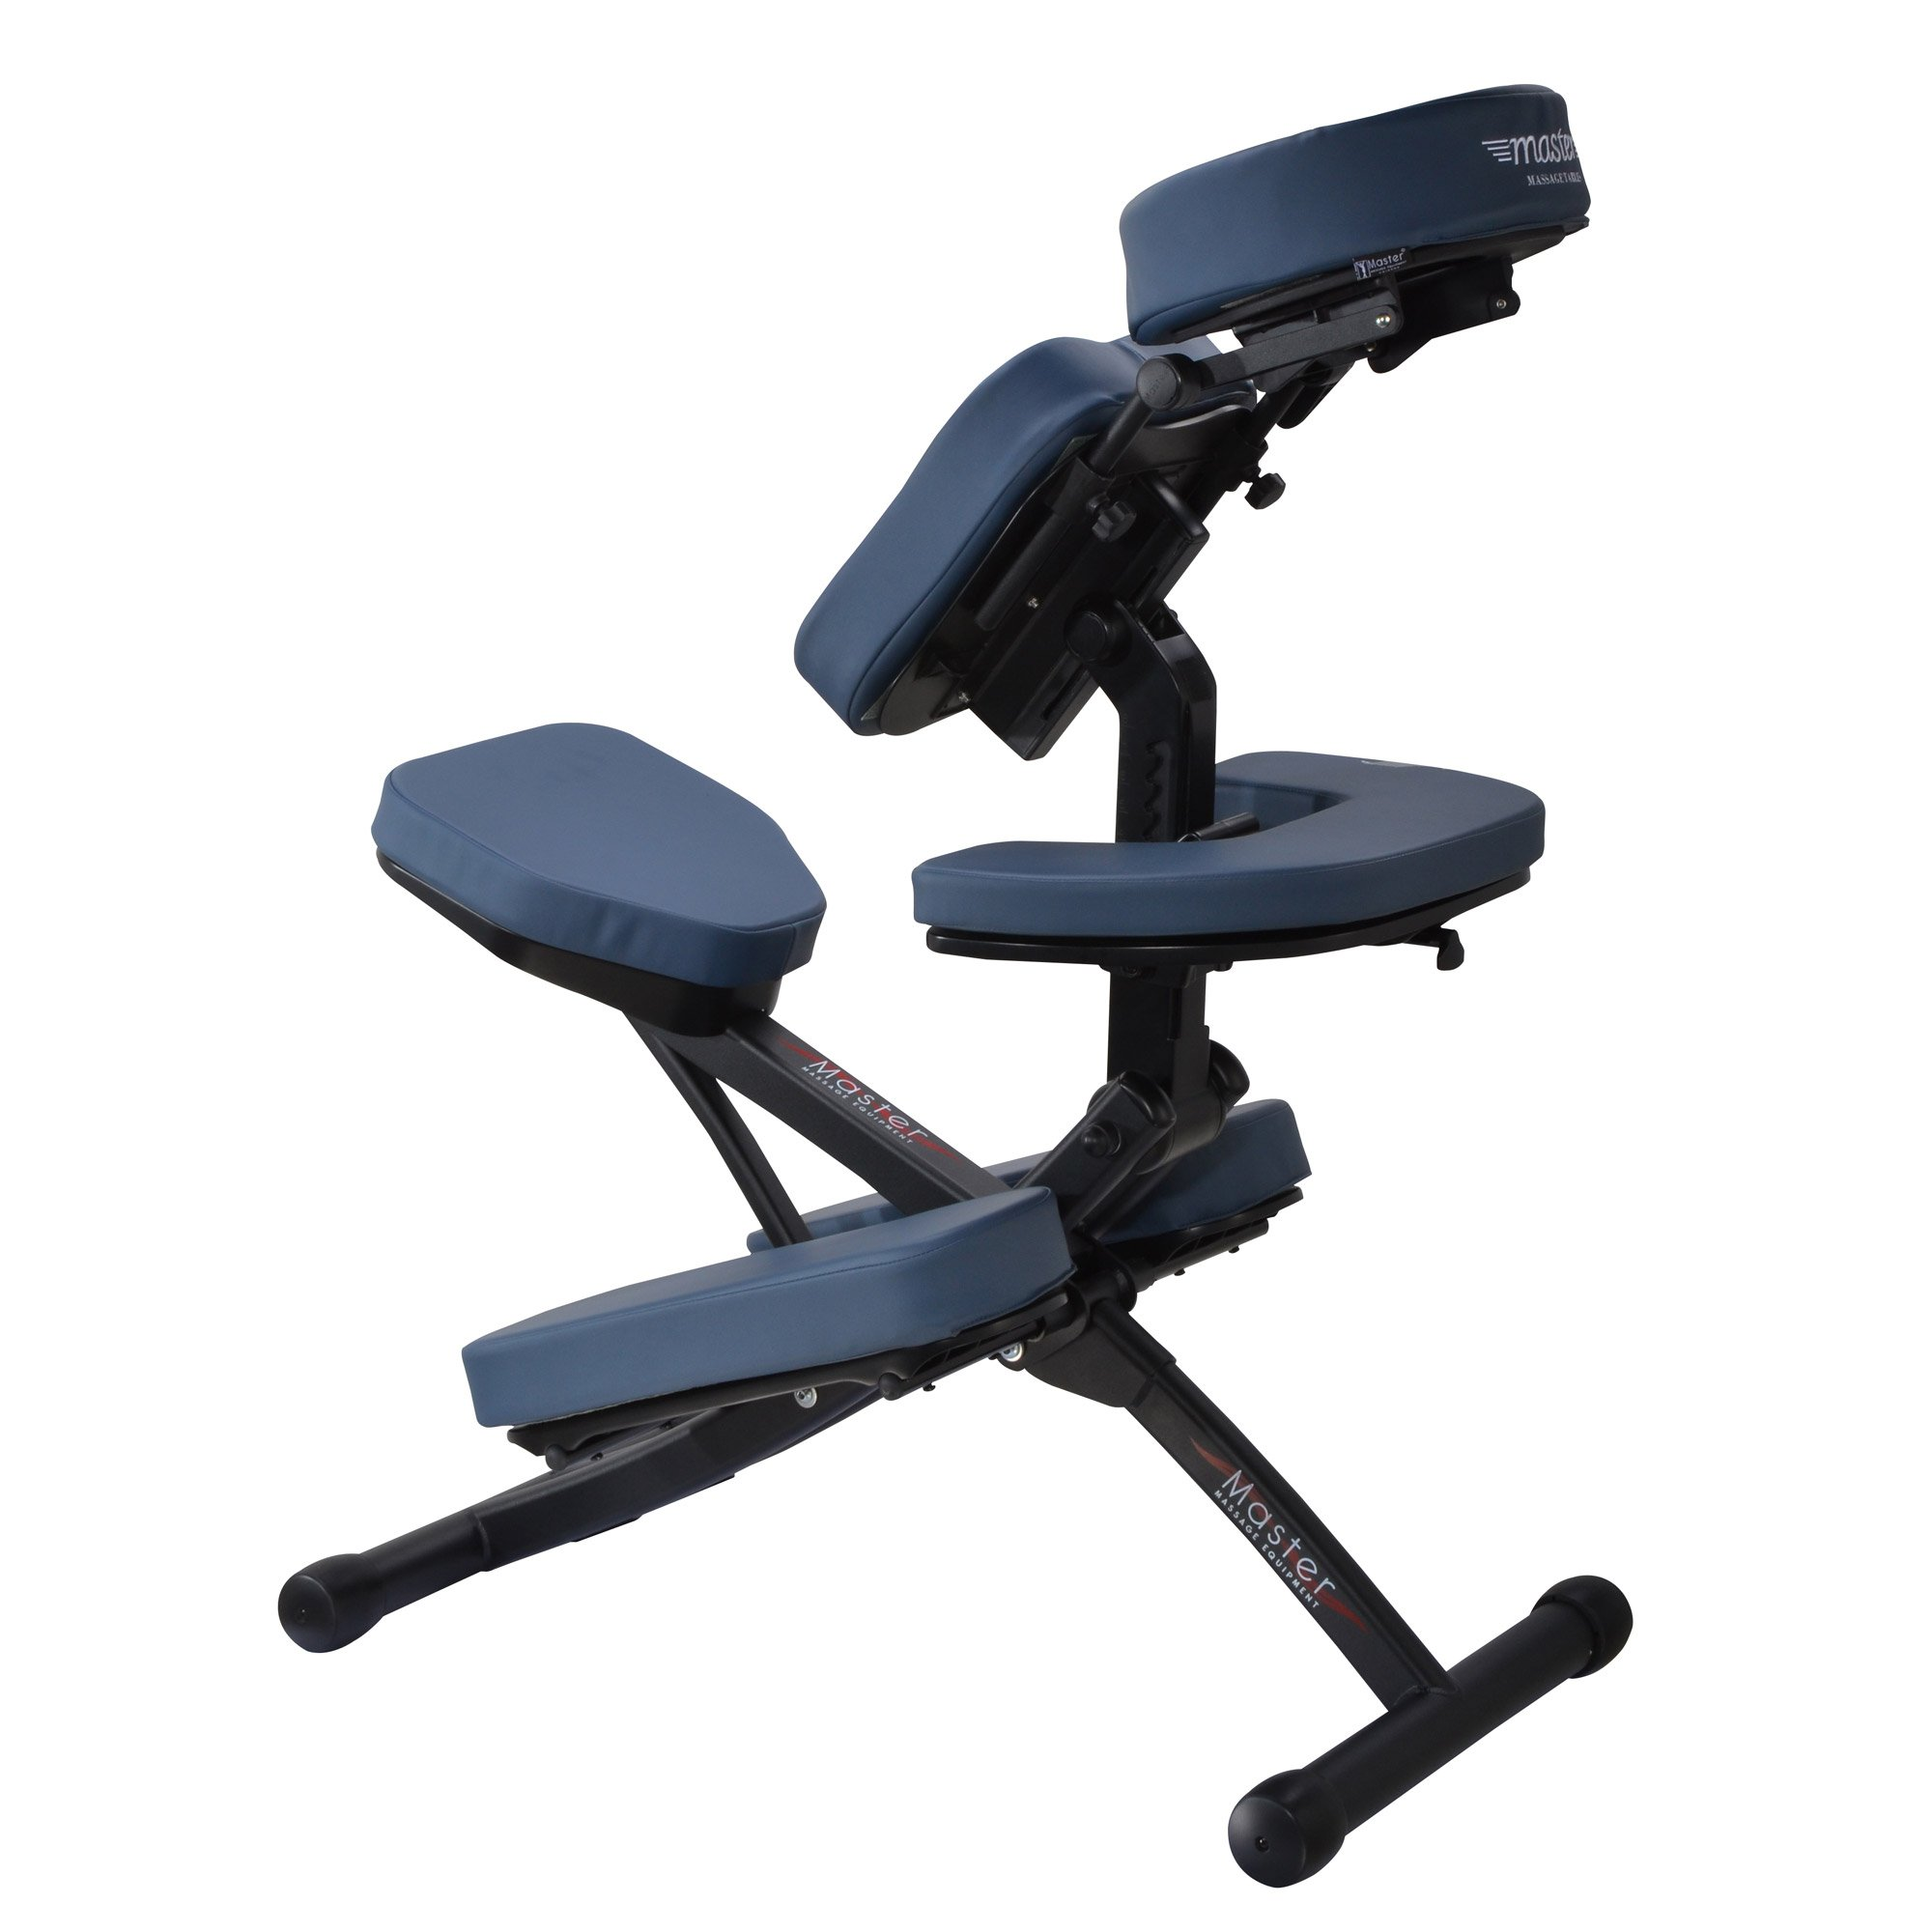 Master Massage Rio Portable Massage Chair - Royal Blue by Master Massage (Image #5)